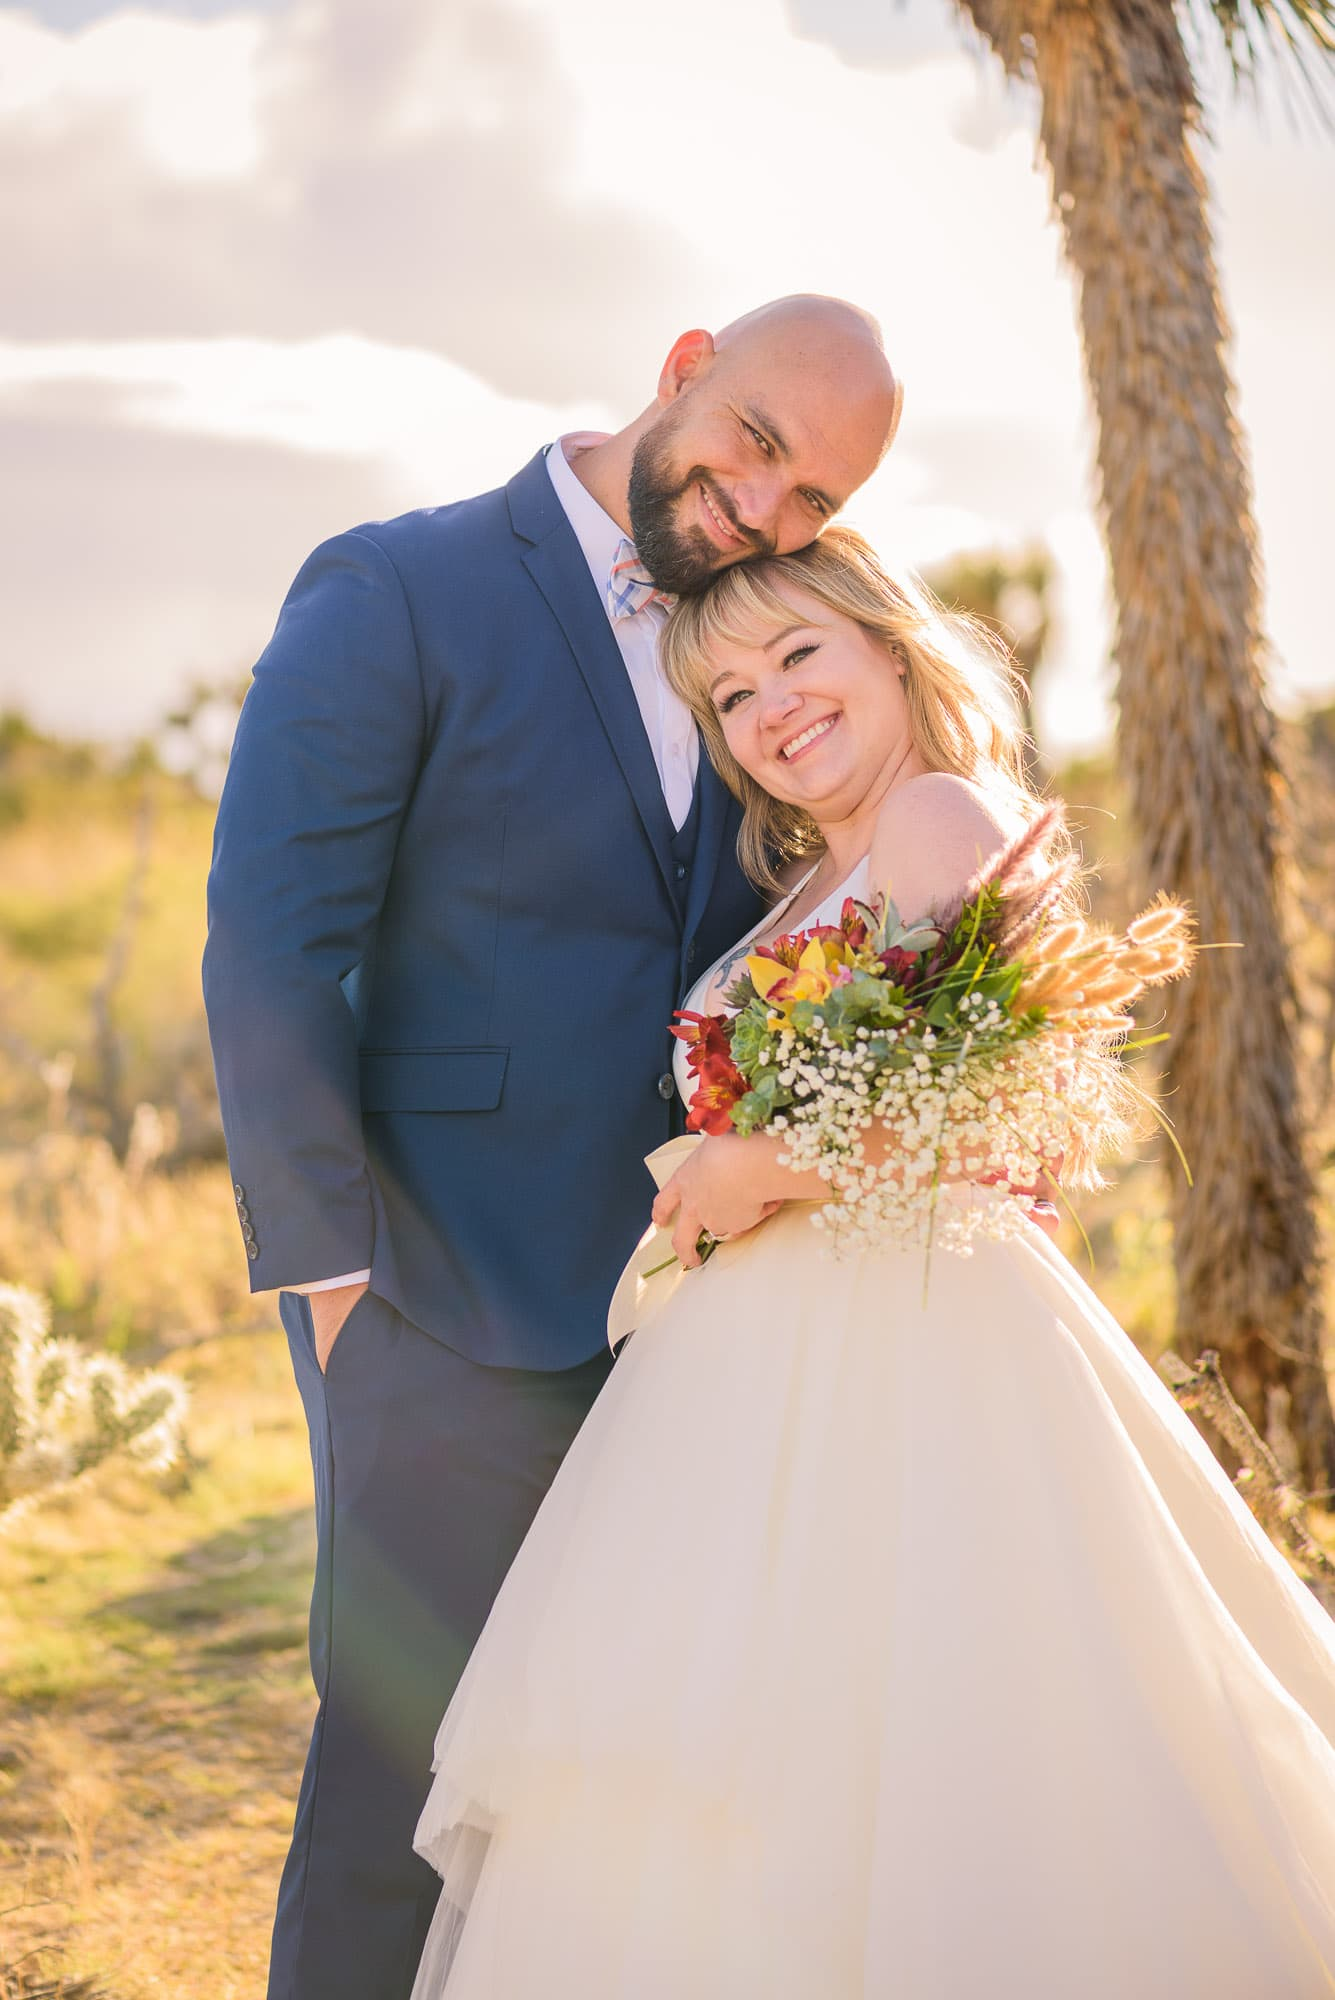 035_Alan_and_Heidi_Joshua_Tree_Spring_Elopement